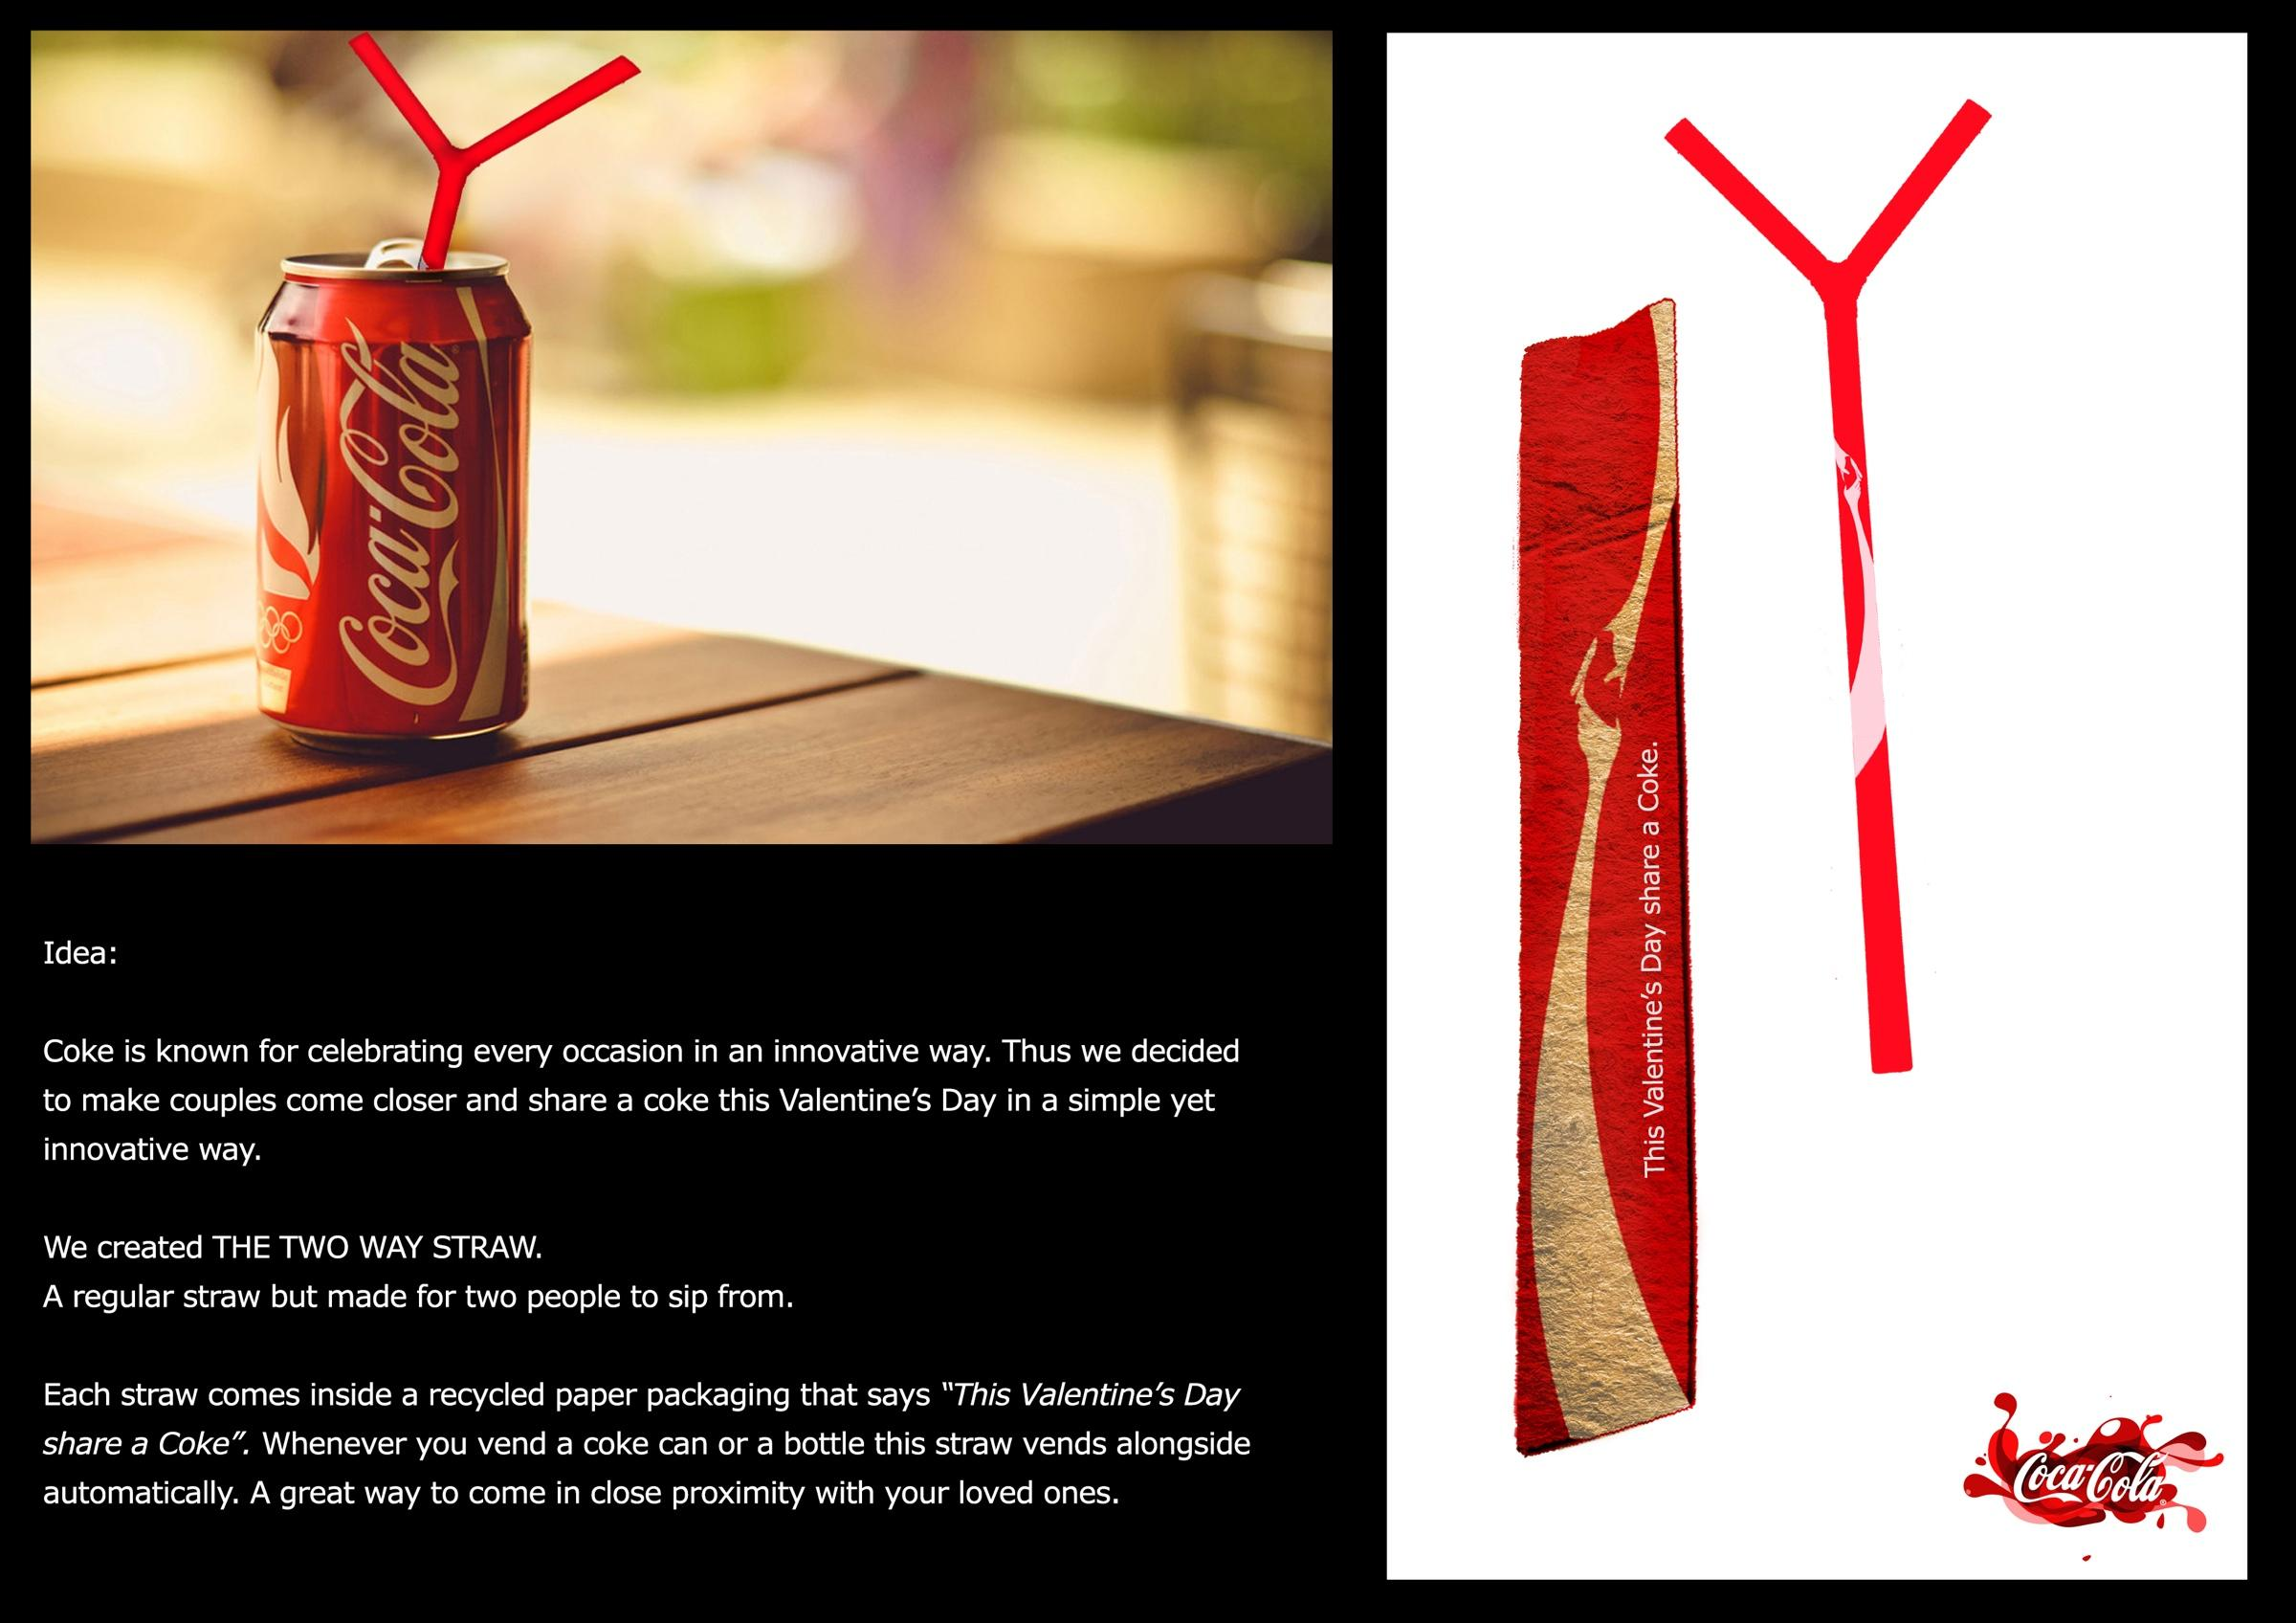 Coca-Cola Direct Ad -  Two Way Straw